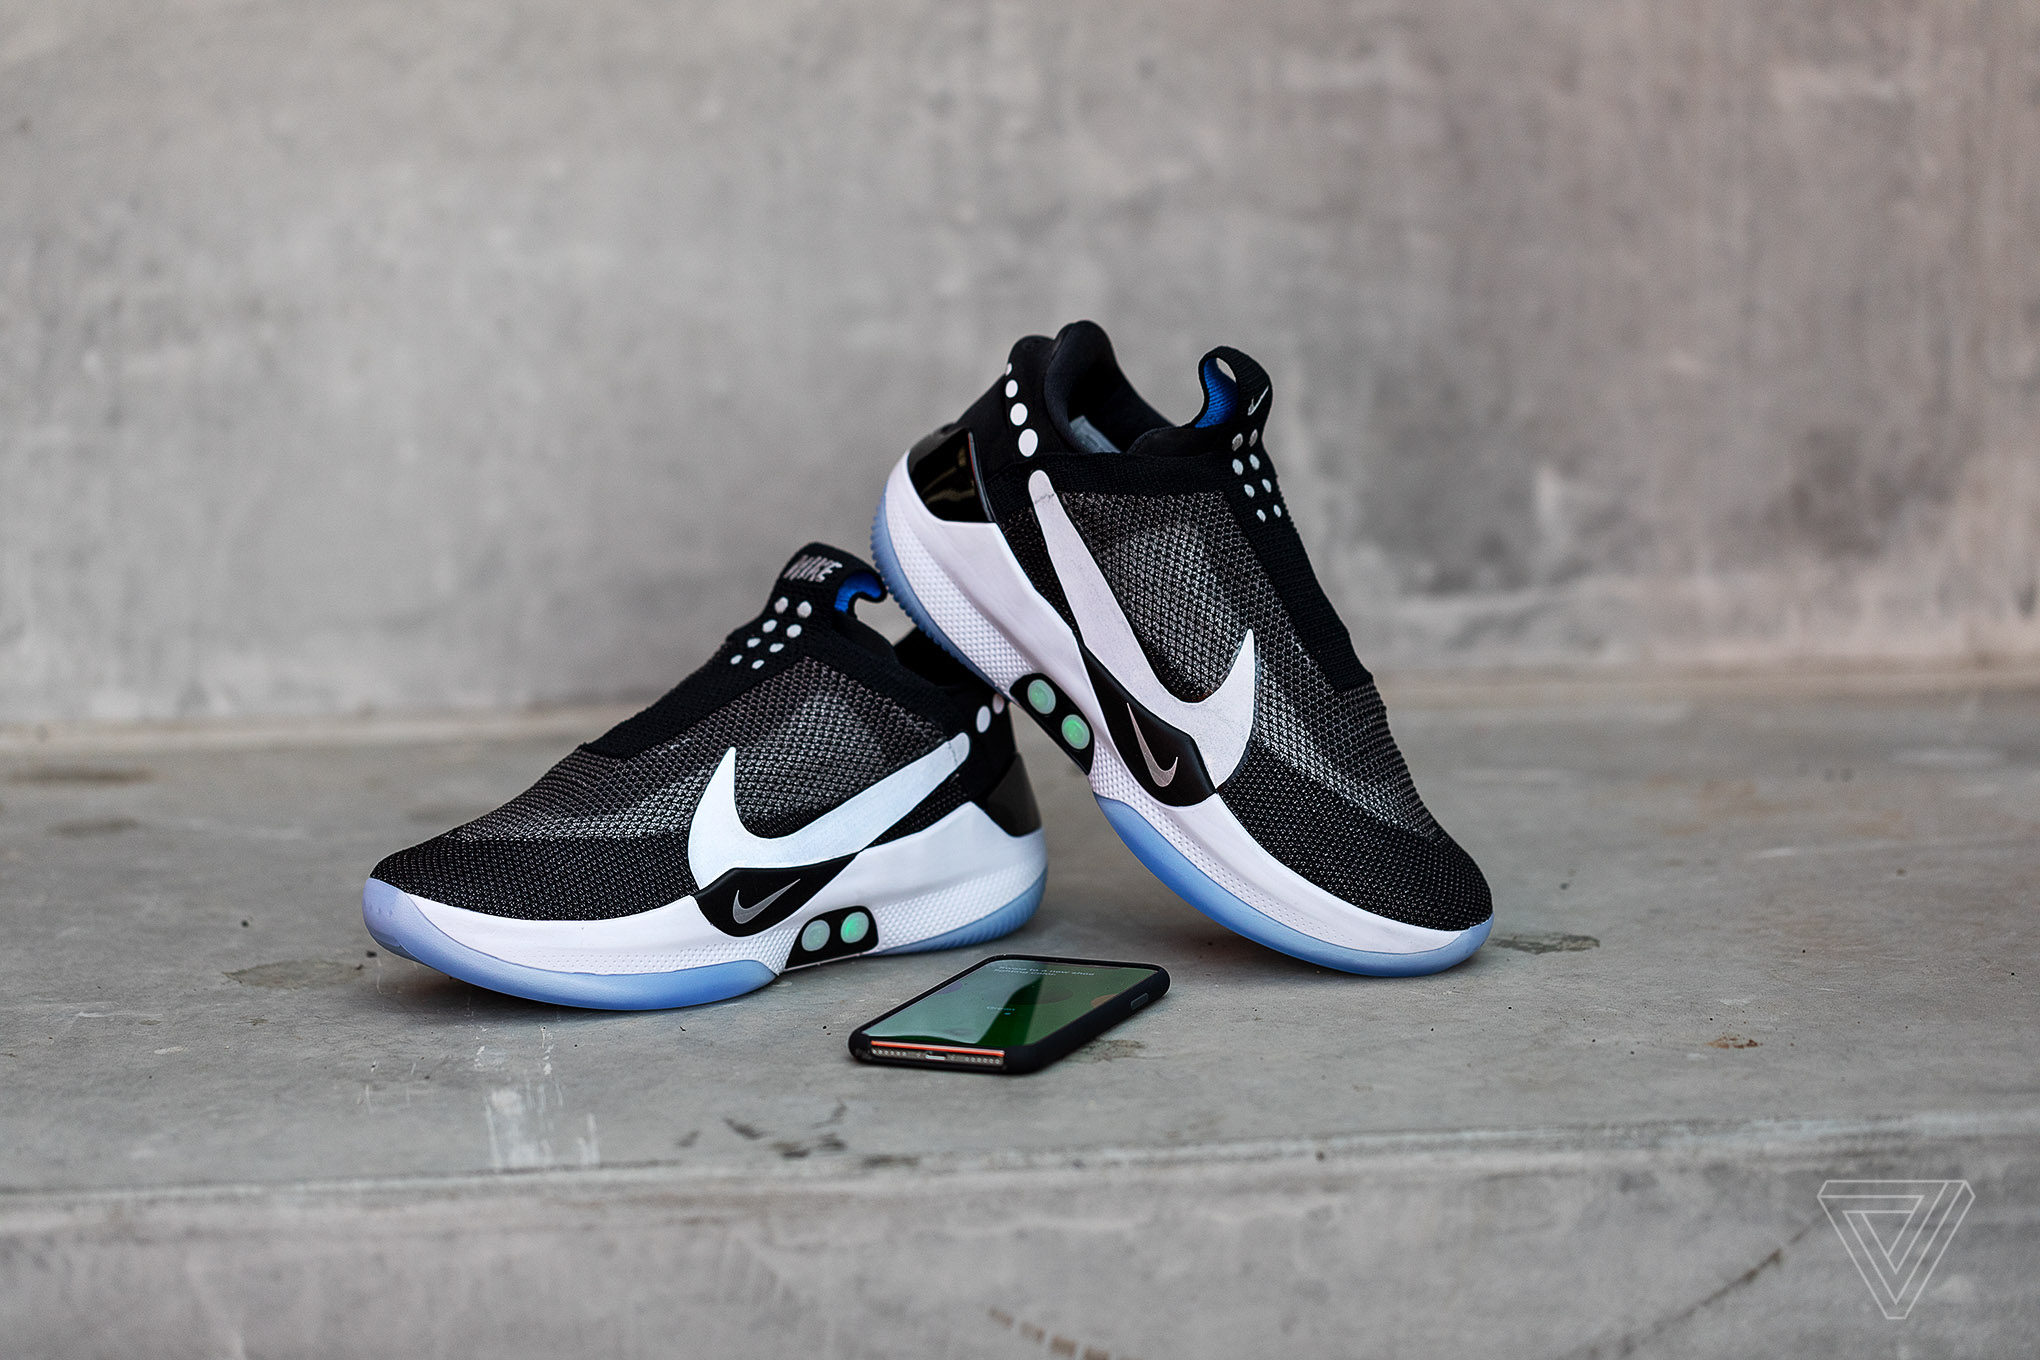 7929f2e8e790 Nike s Adapt BB self-lacing sneakers let you tie your shoes from an ...